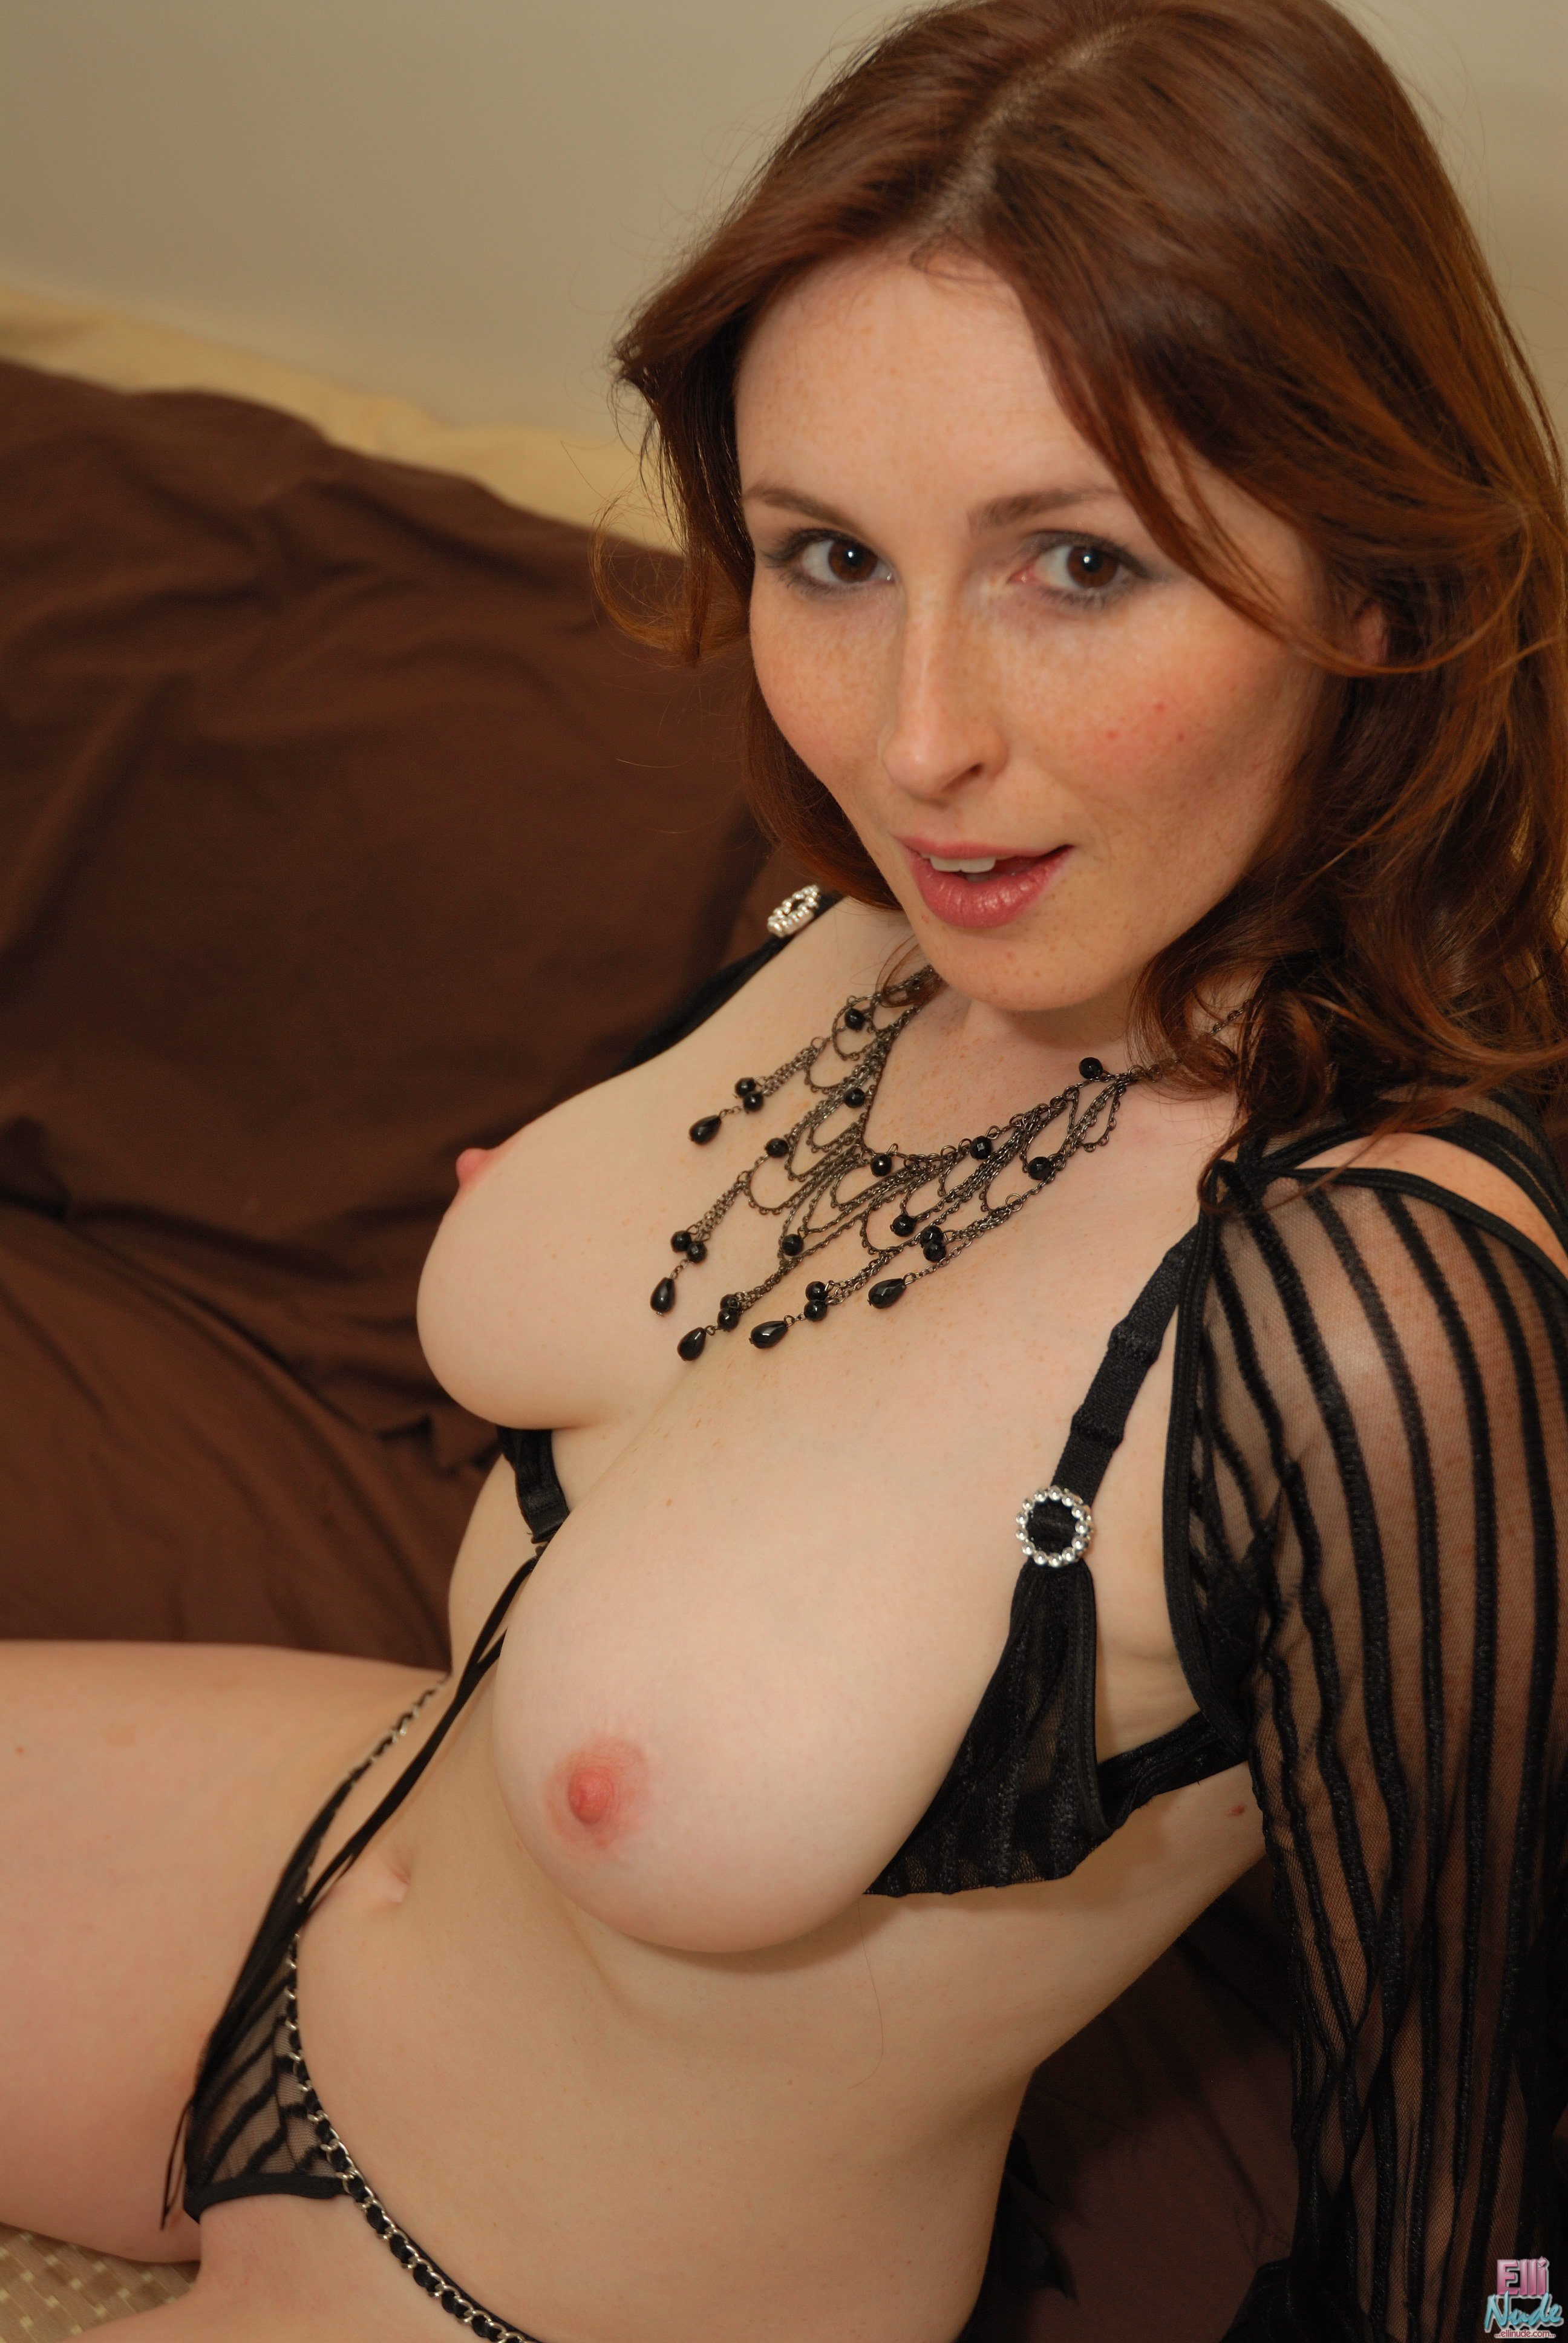 japanese mom and her son fucking Miss Sweeney Perfect MILF JulieBooks MissSweeney OnlyTease Perfecttits Cleavage JulieBooks OnlyTease ImageFap HugeNipples Model